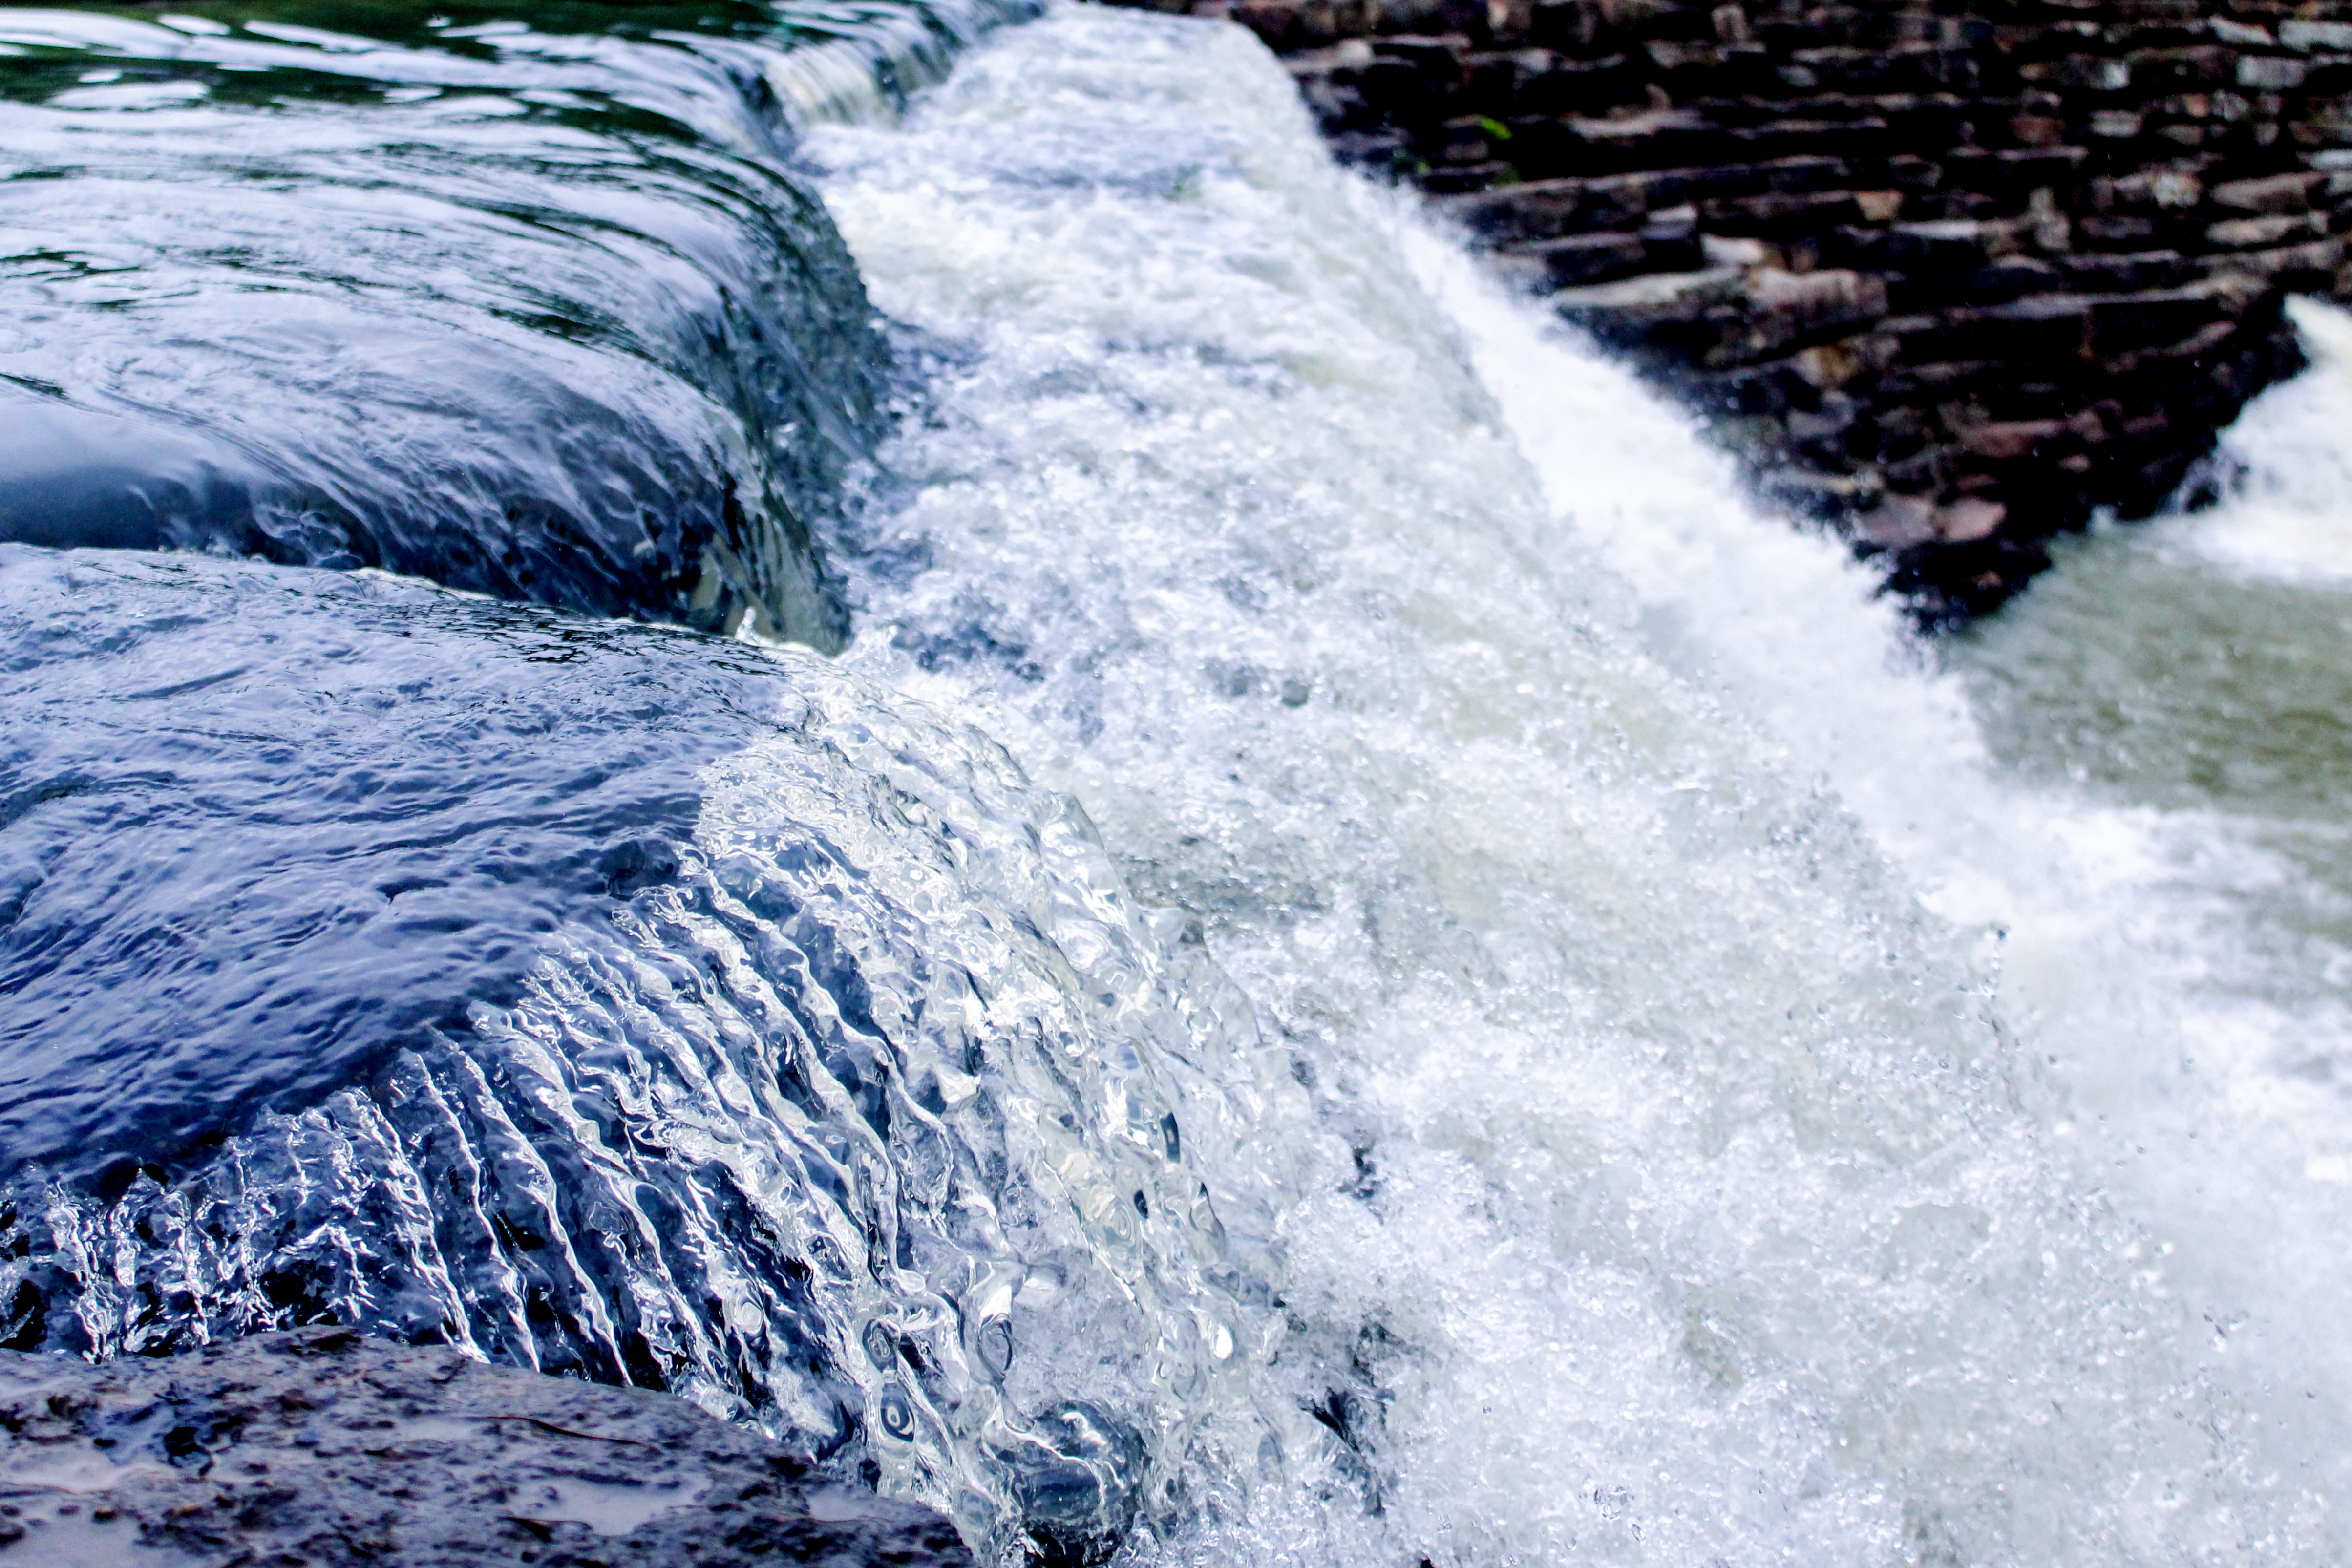 An abstract image of power: a strong, flowing current of water.